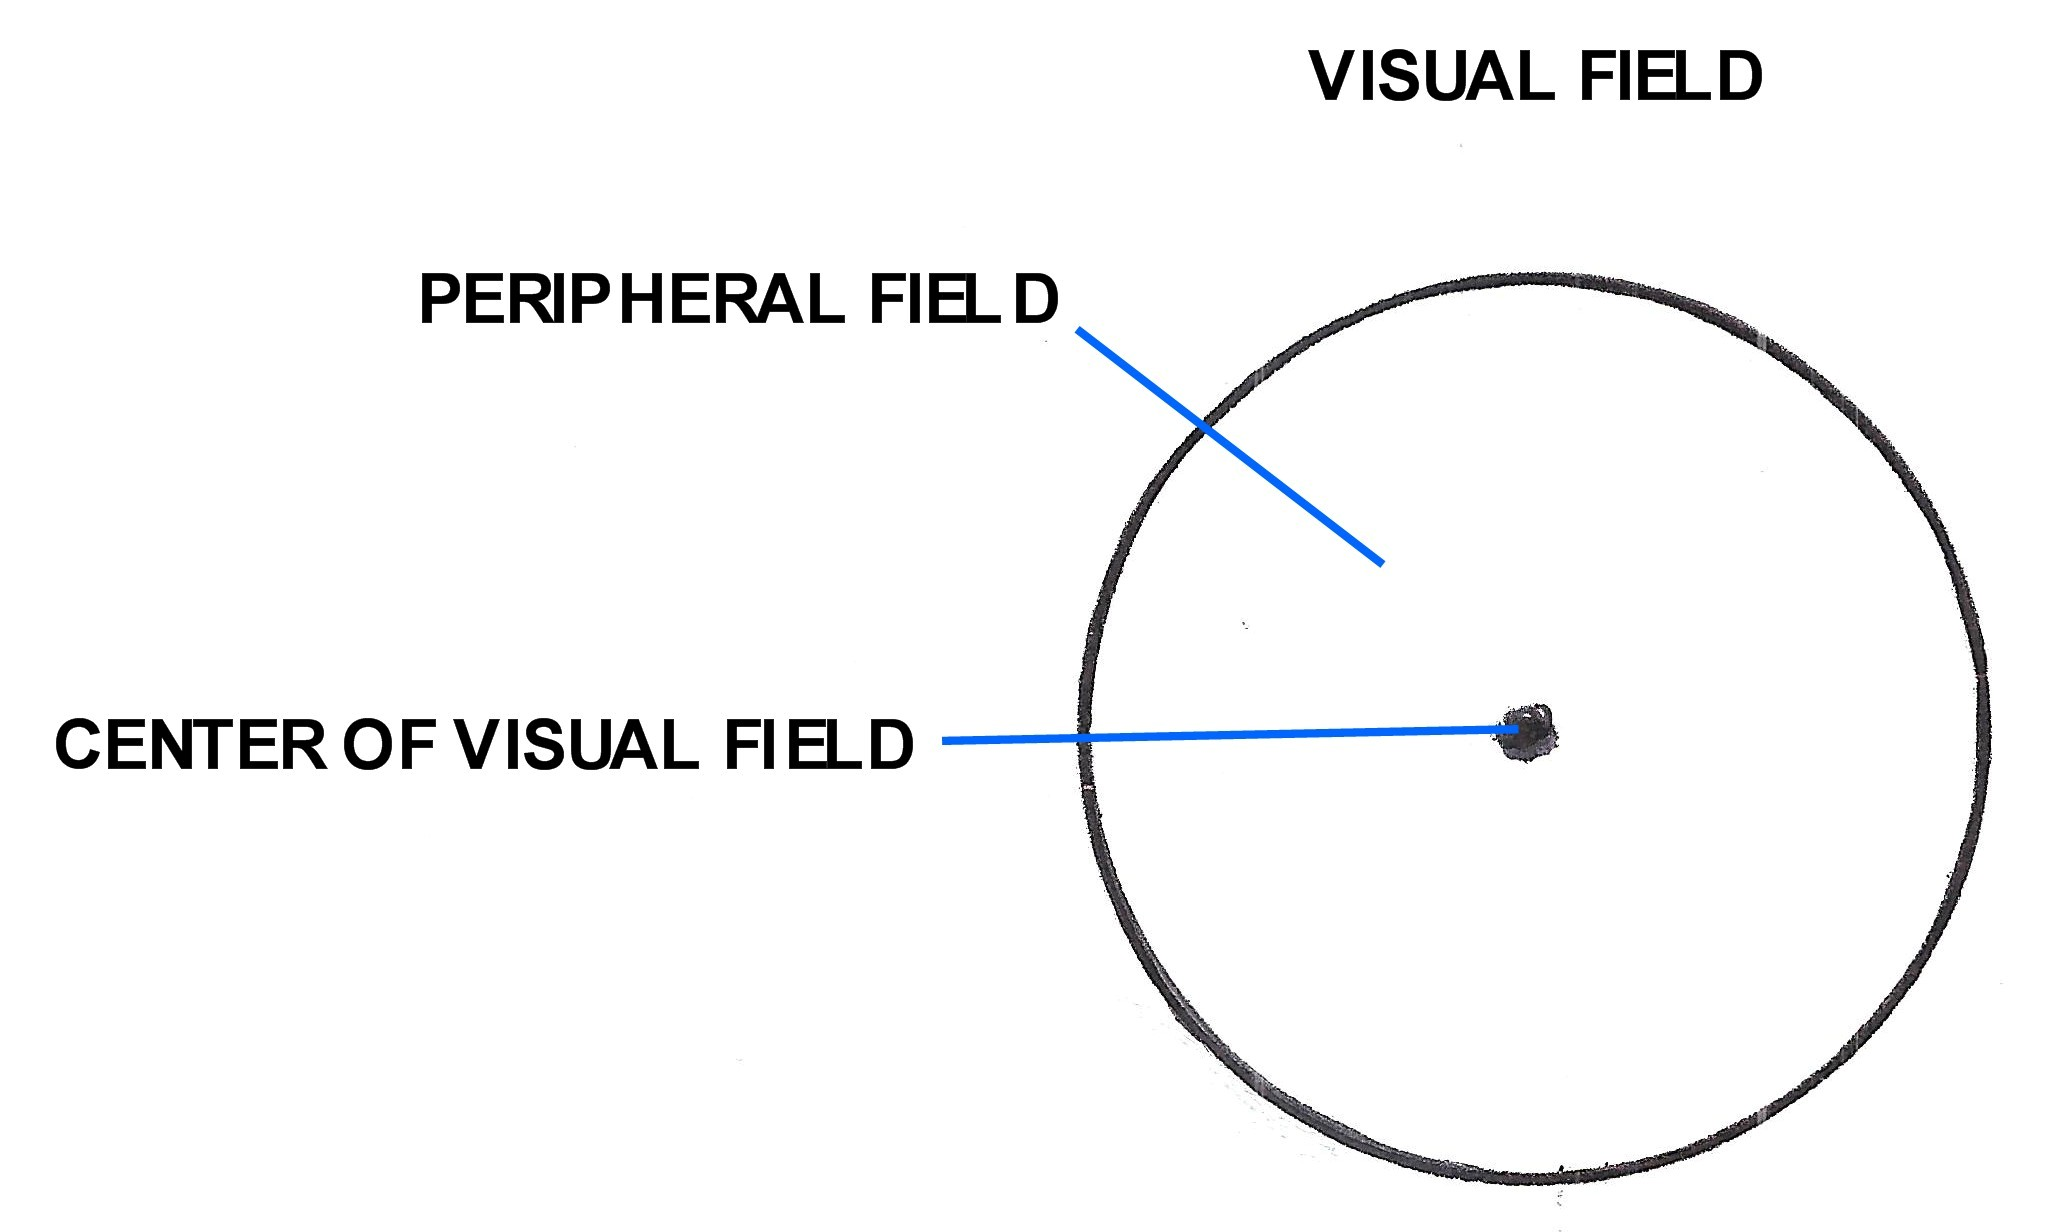 CENTER OF THE VISUAL FIELD